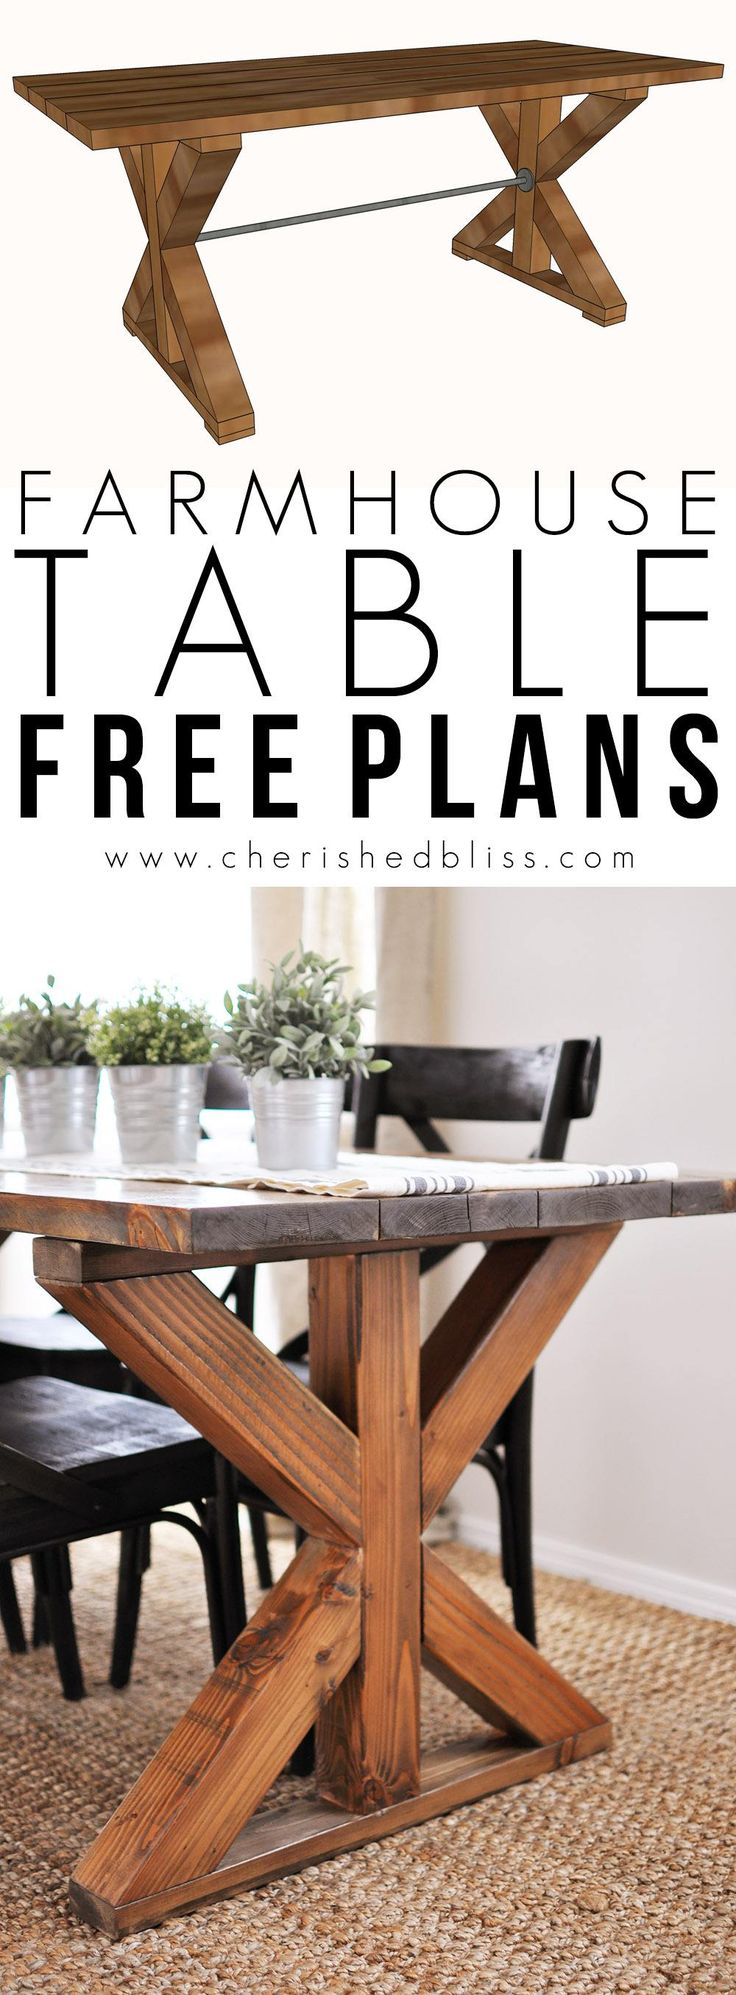 X Farmhouse Table 15 Easy DIY